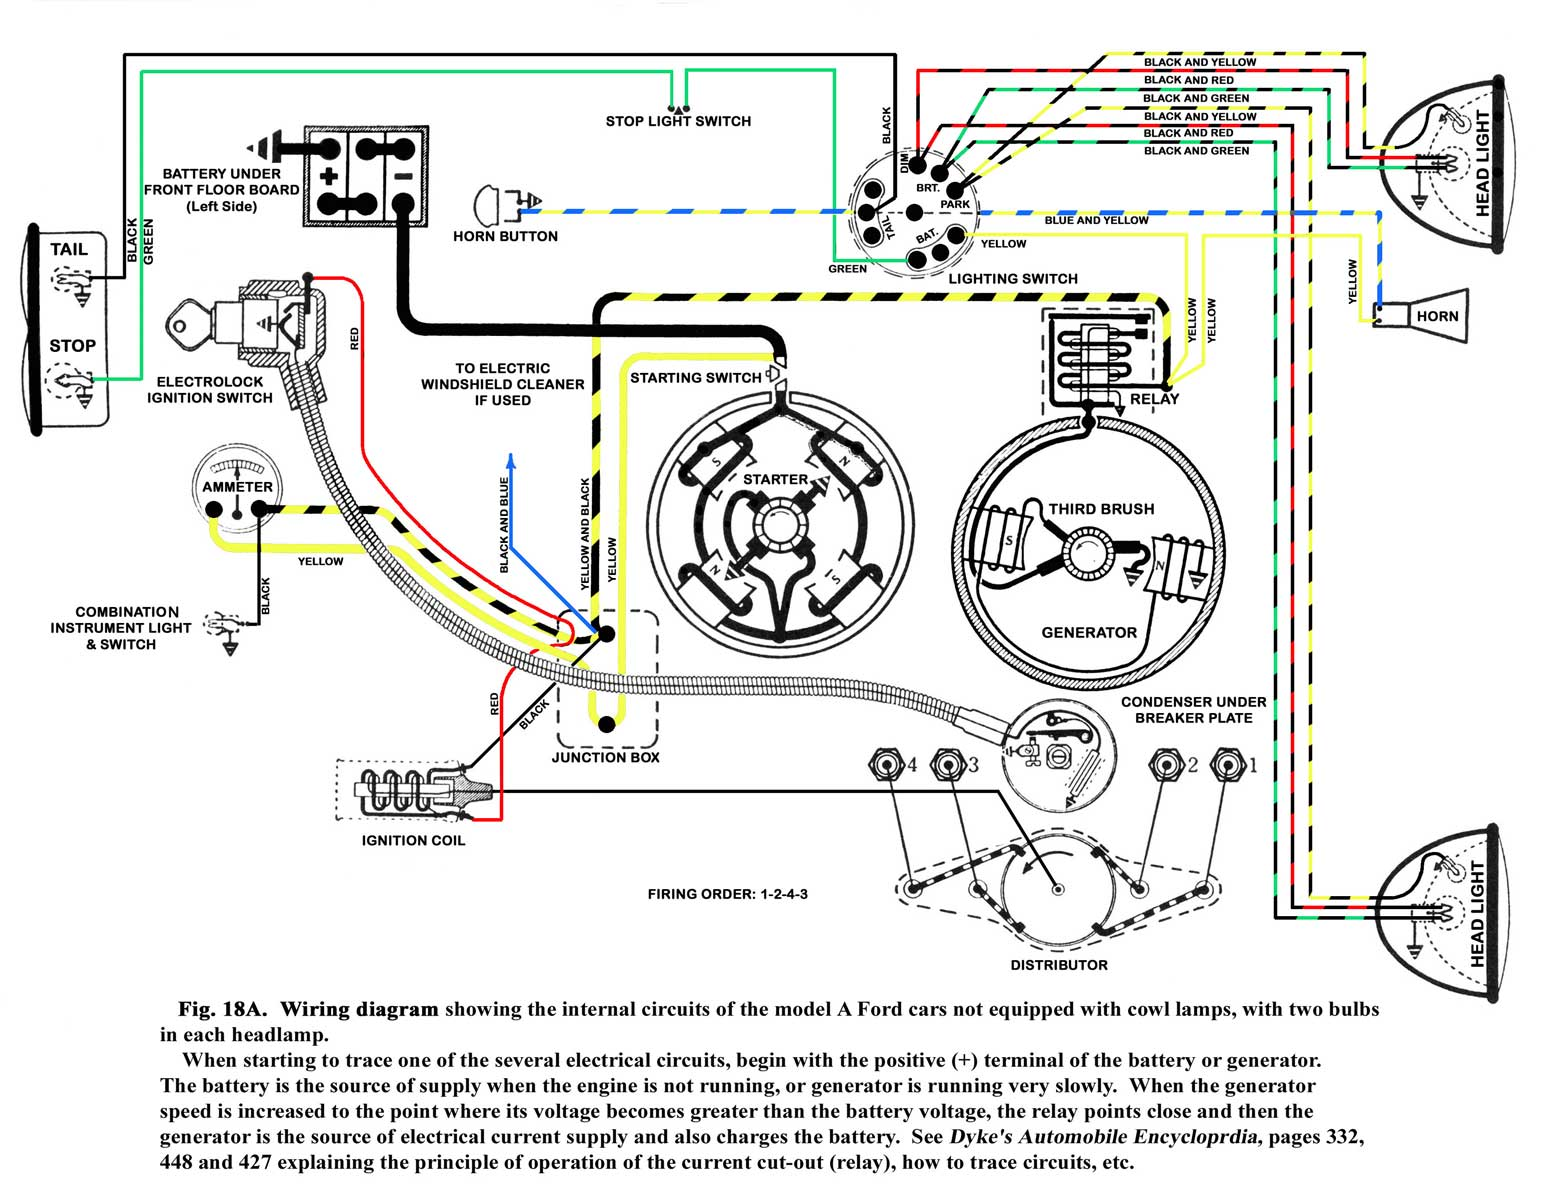 medium resolution of ford wiring harness diagrams wiring diagram detailed ford explorer wiring harness diagram ford wiring harness diagrams